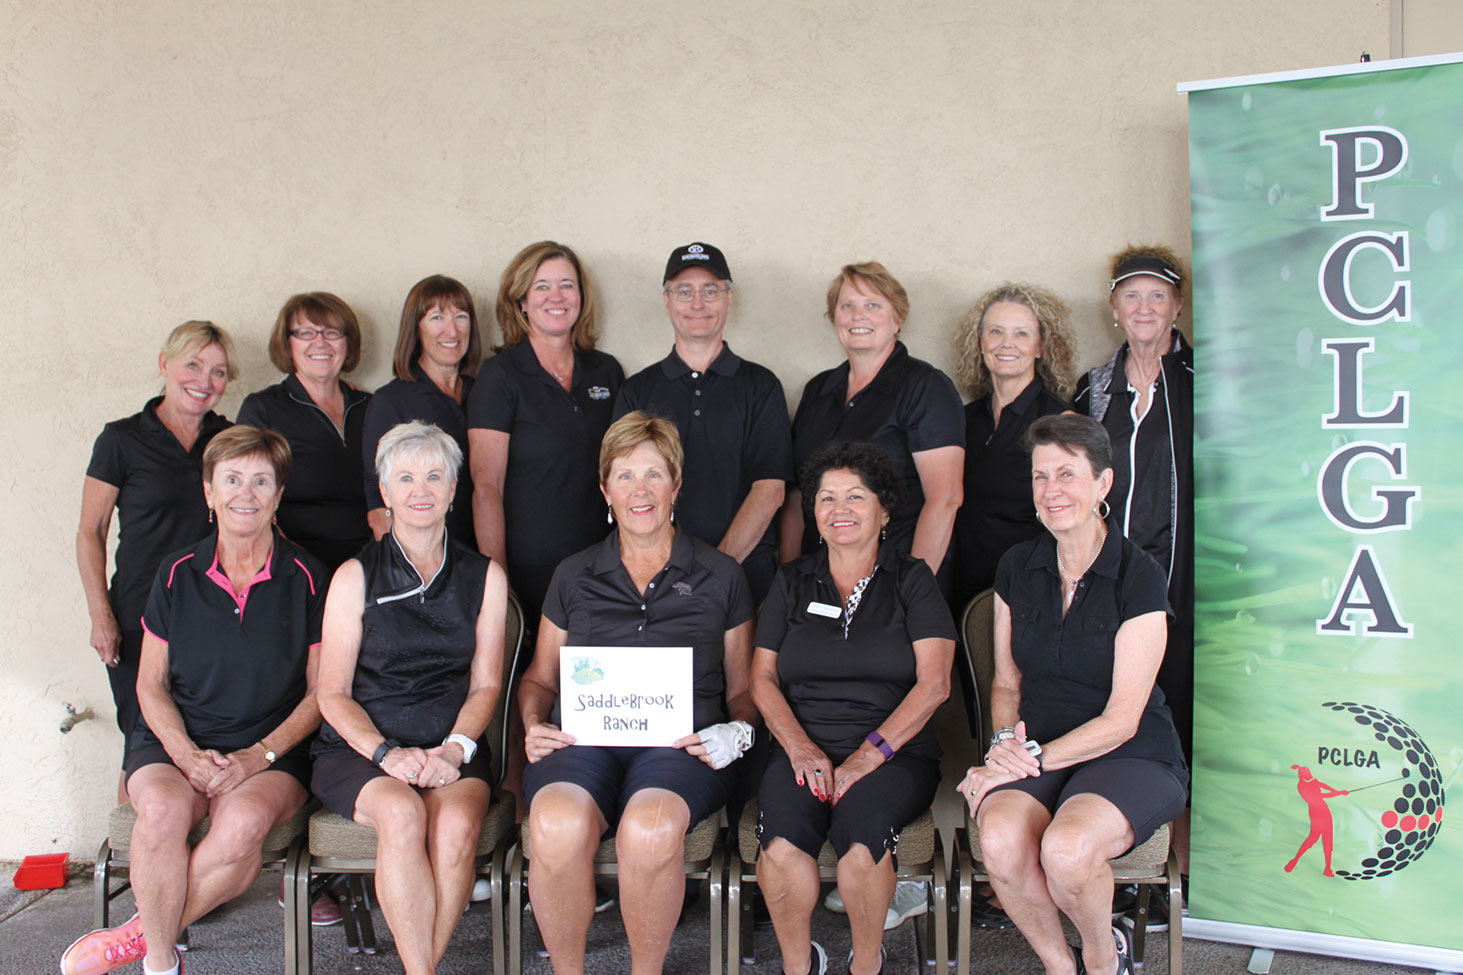 SaddleBrooke Ranch Women's Golf Association Robson Cup Team, front row: Mary Snowden, Marlyce Myka, Lorraine Smith, Mary Hoover, Stephanie Gaskill; back row: Marion Ewing, Nancy Gallant, Pilar Borm, Alex Anna, Mike Jahaske, Jean Cheszek, Carole Ericksen, Jeanne Jensen